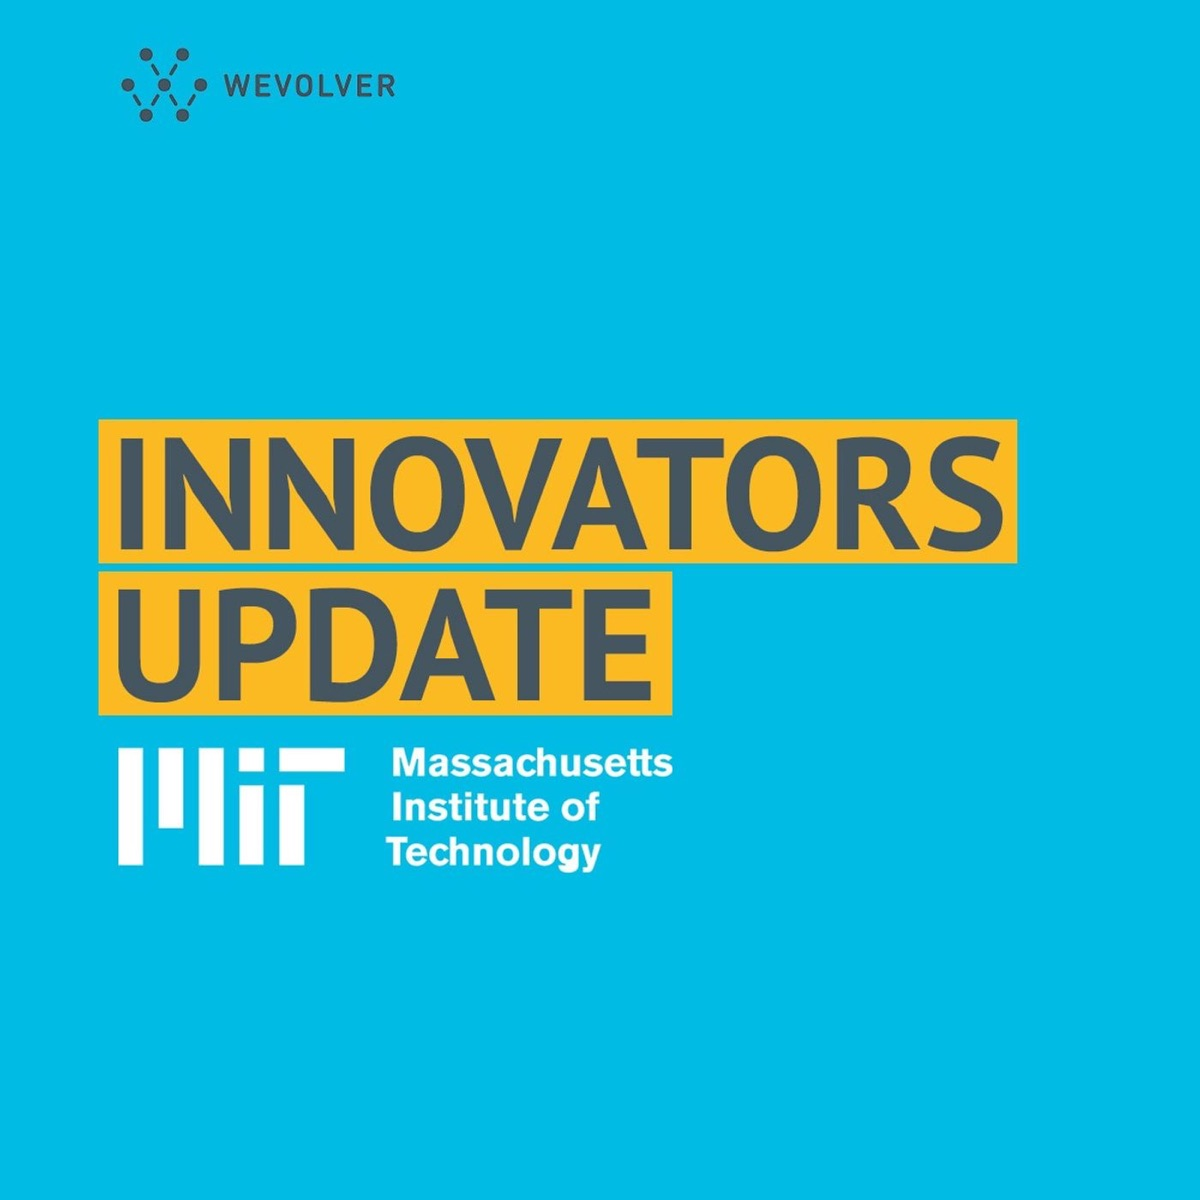 Innovators Update with MIT: Devices monitoring residents in nursing homes, AI collaborating with doctors & Robots manipulating cables and the impact of that.